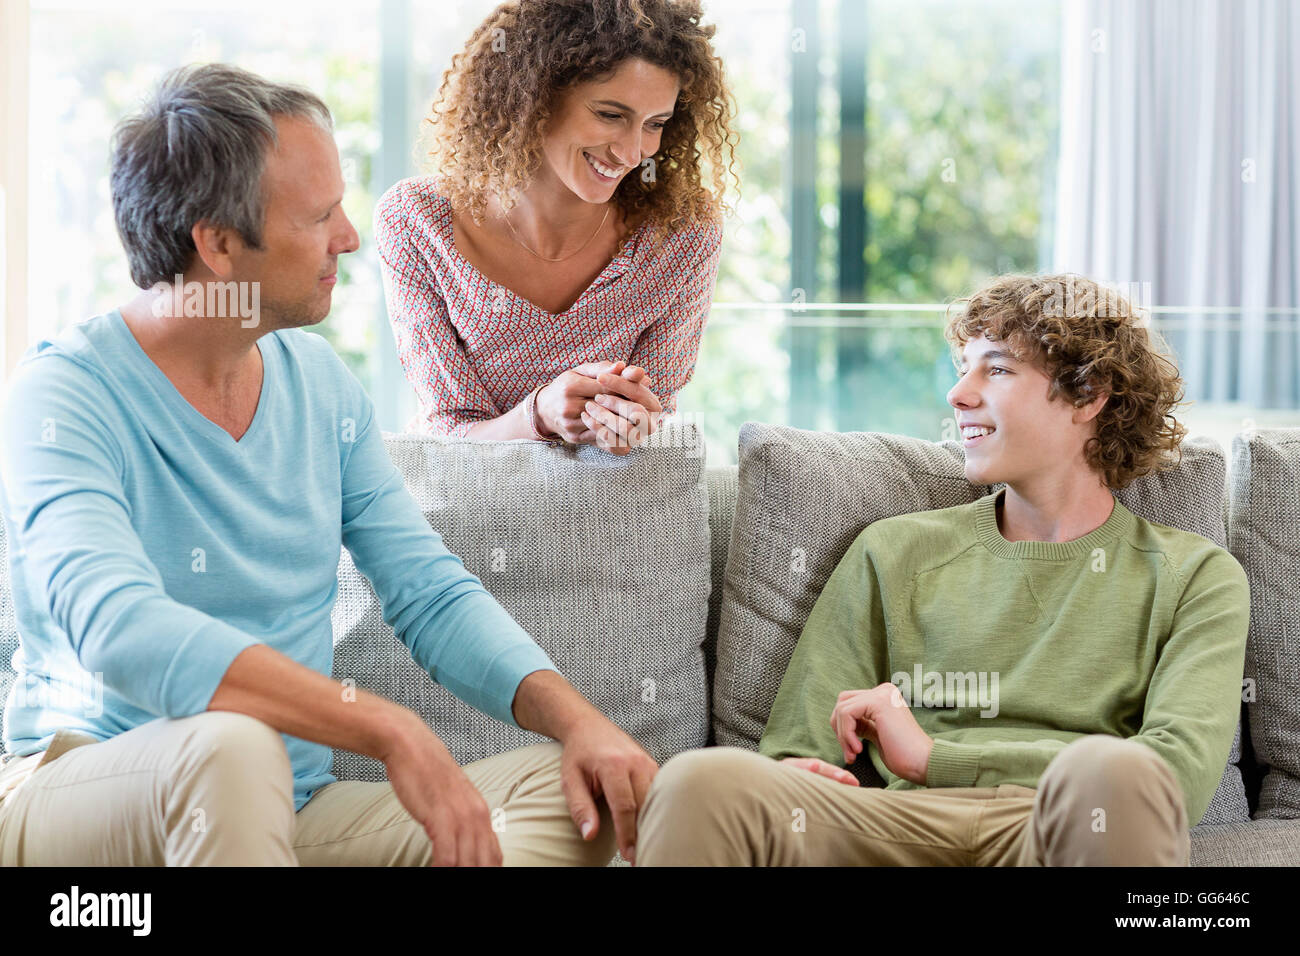 Happy family smiling in a living room at home - Stock Image